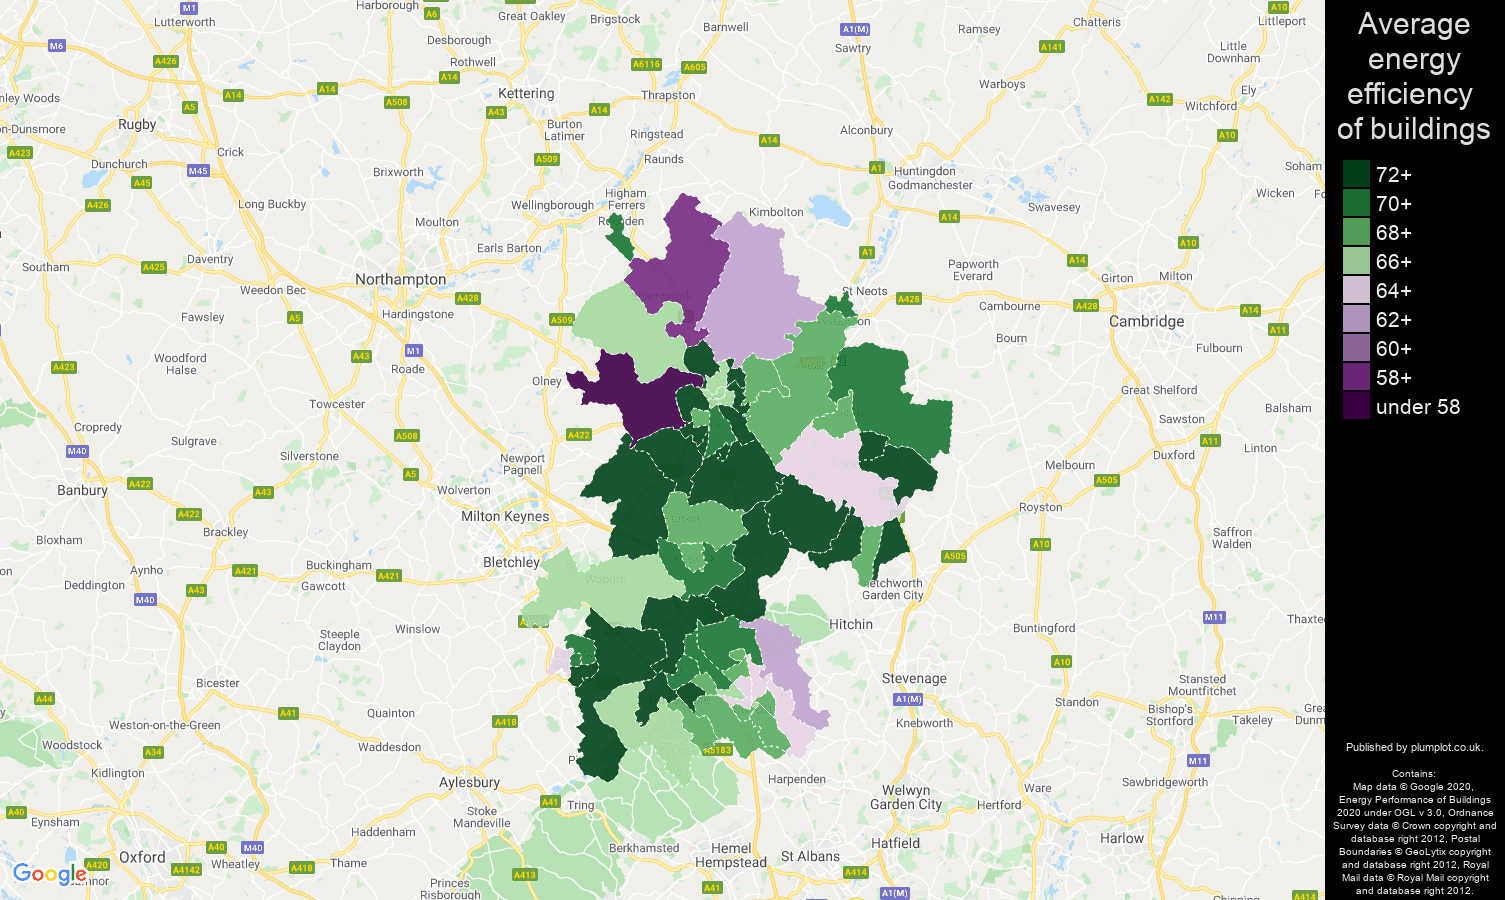 Bedfordshire map of energy efficiency of flats